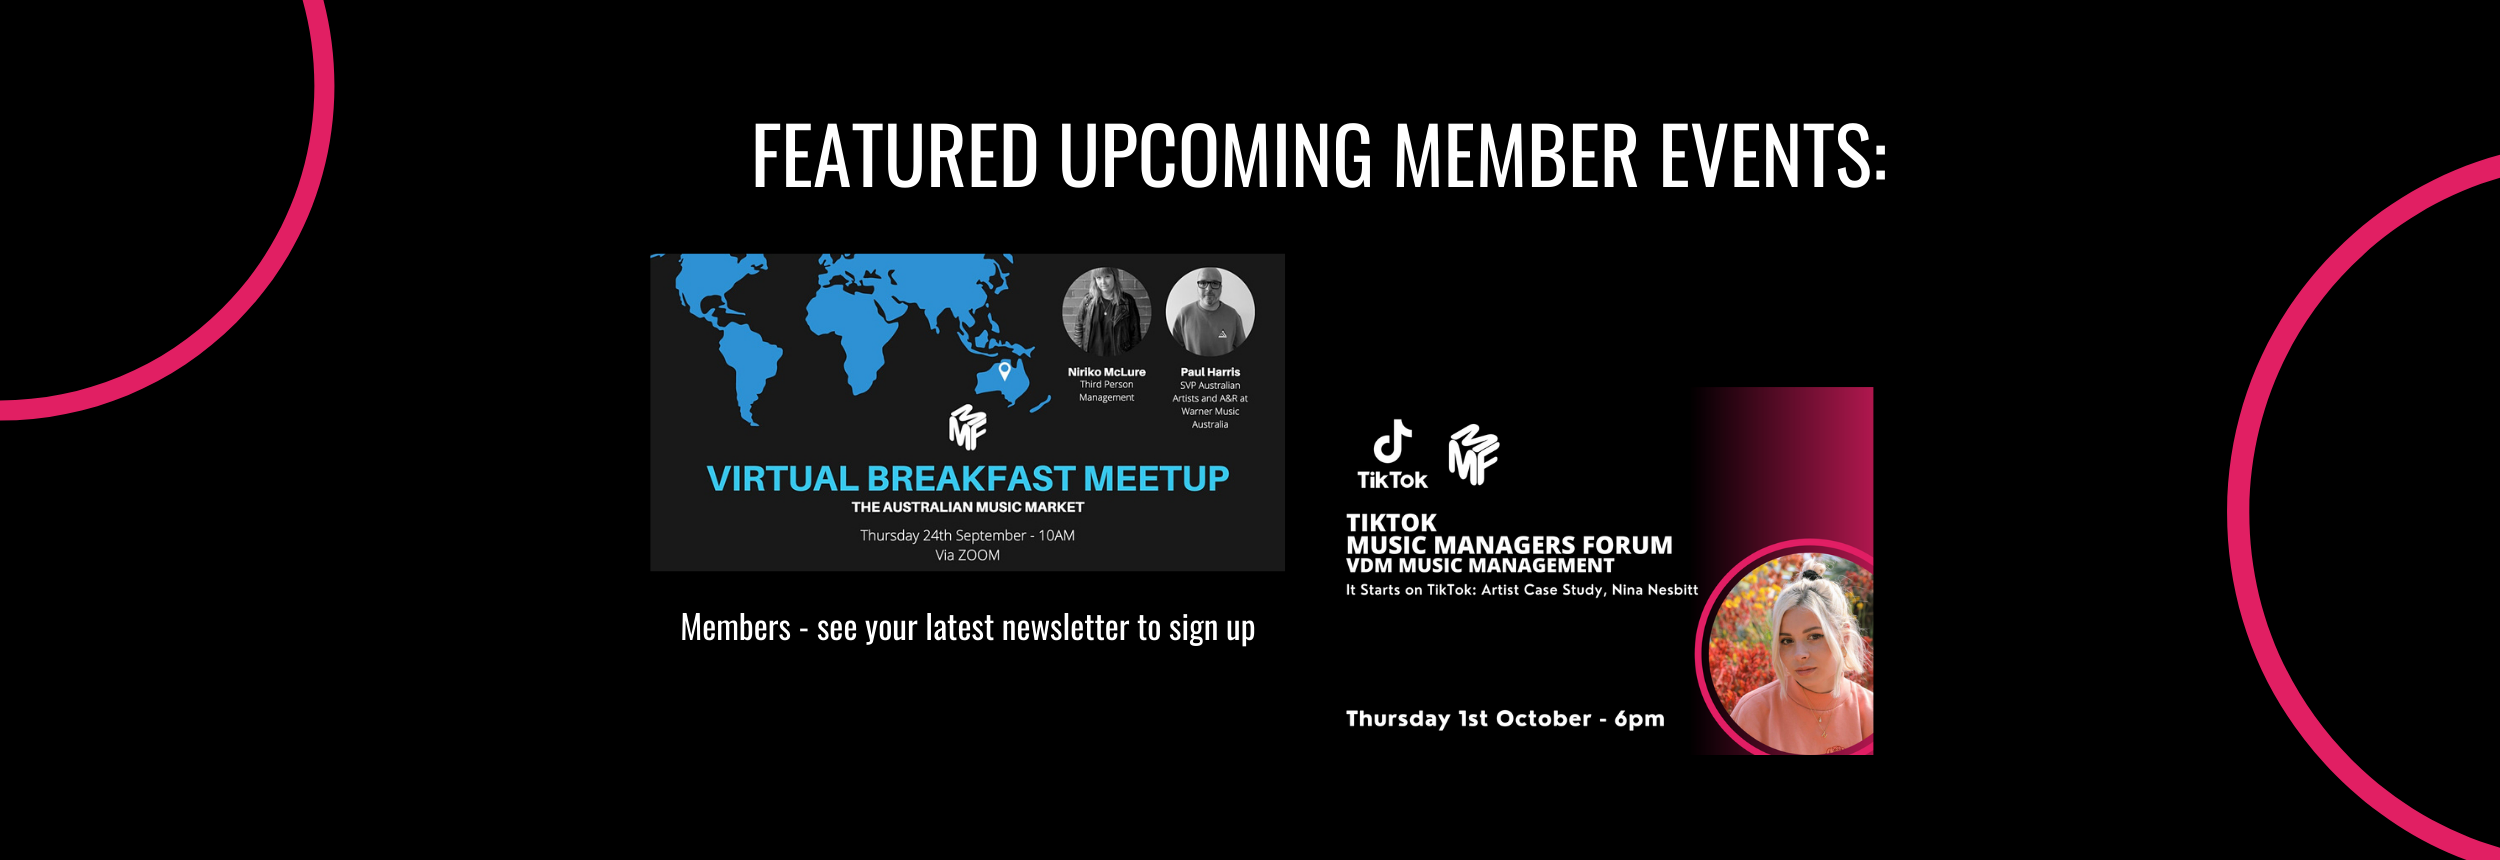 Upcoming-member-events